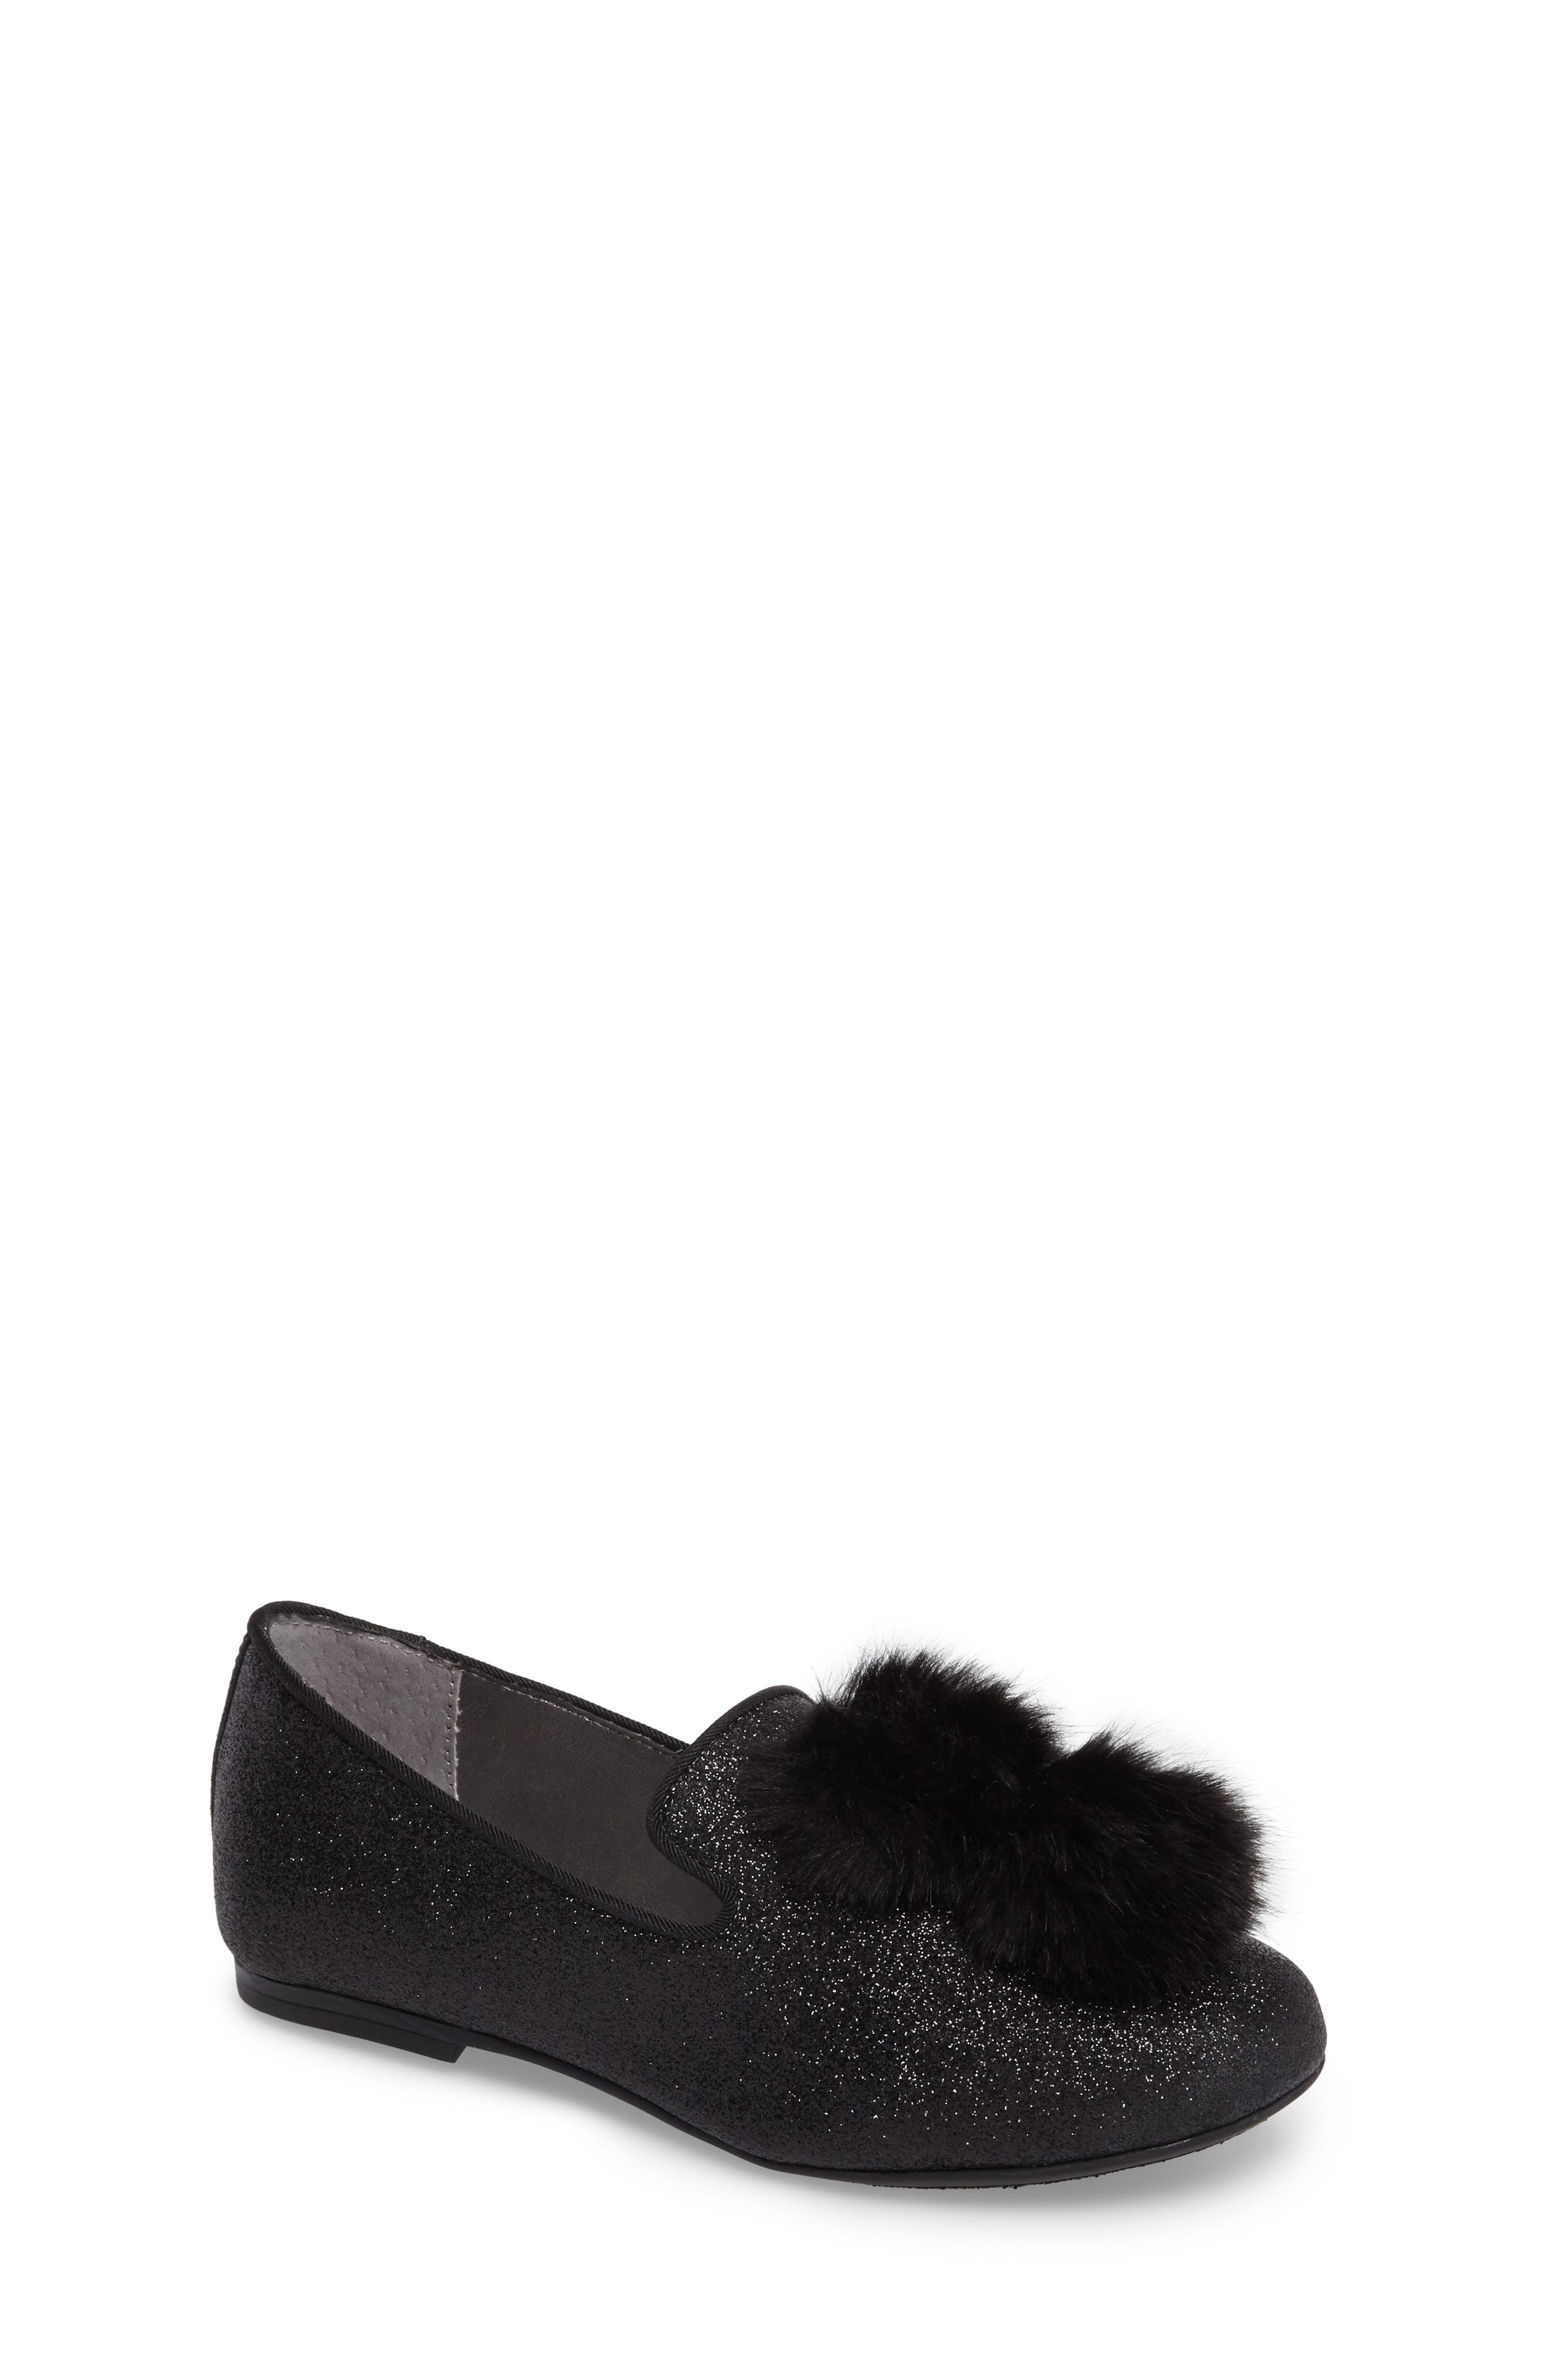 Caela Faux Fur Loafer,                             Main thumbnail 1, color,                             Black Glitter